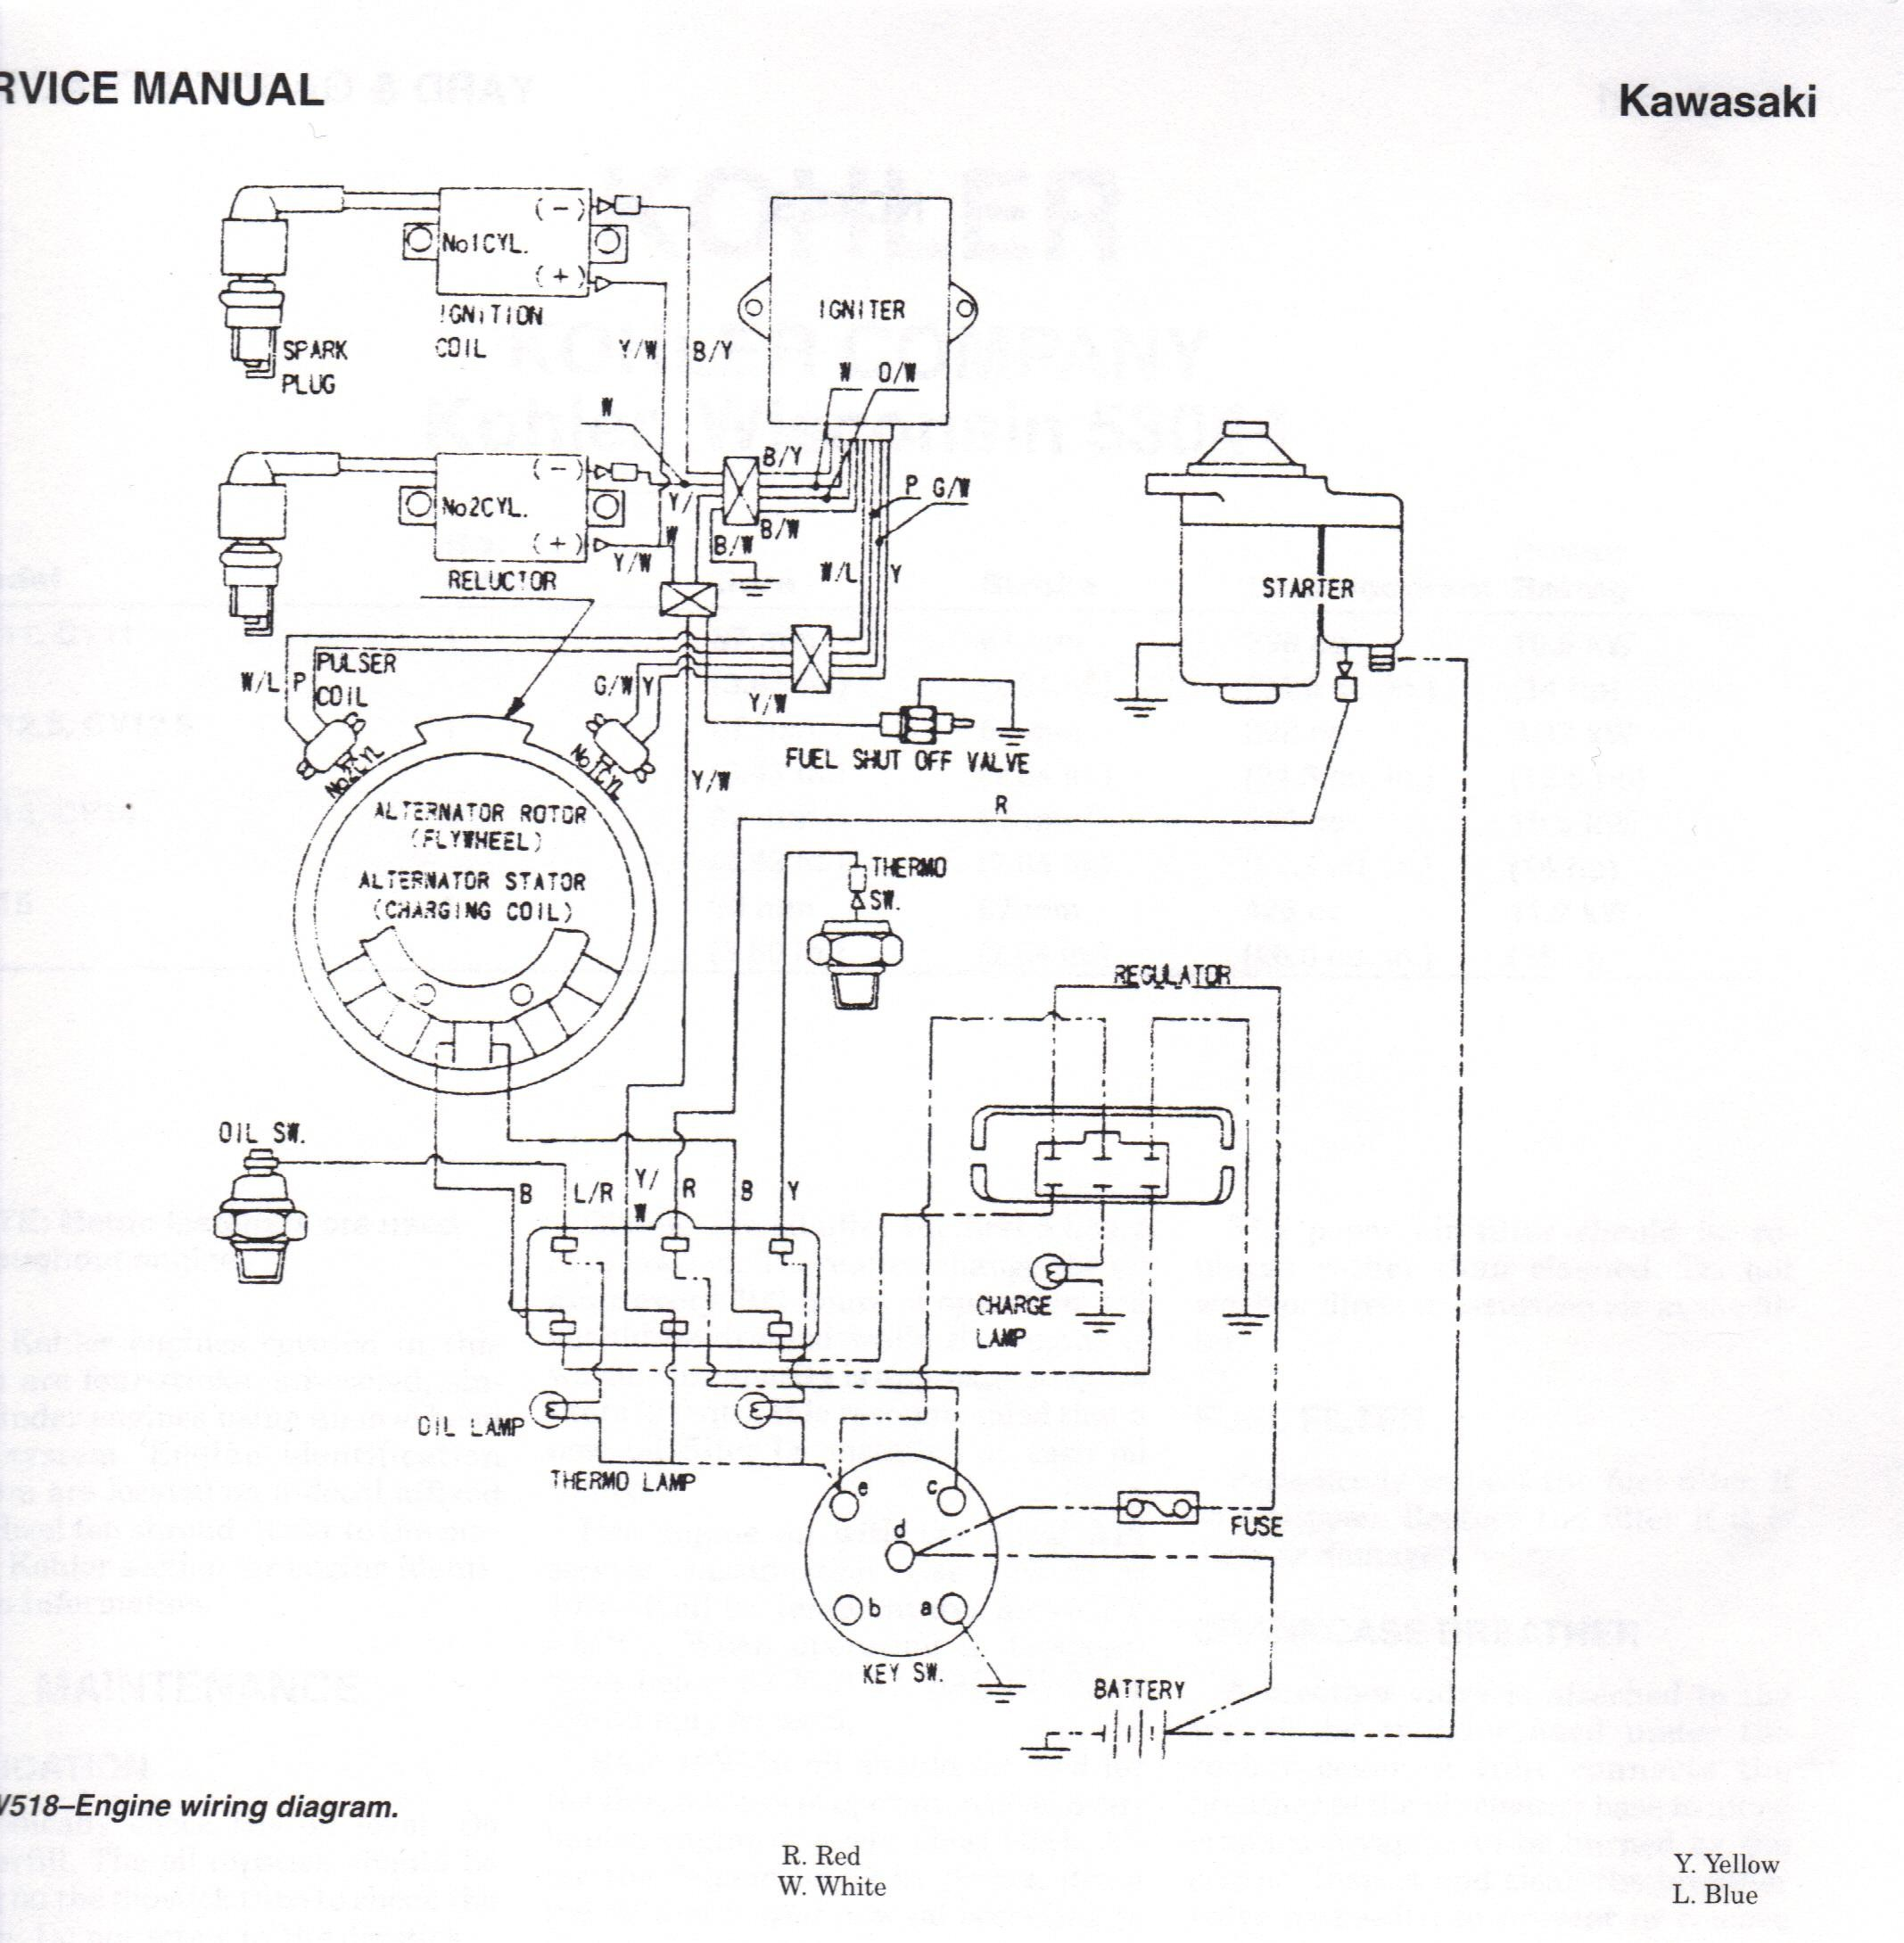 John Deere 345 Schematic Lo 1389] Wiring Diagram for 2640 John Deere Alternator Of John Deere 345 Schematic Need A 345 Wiring Diagram Pdf Please